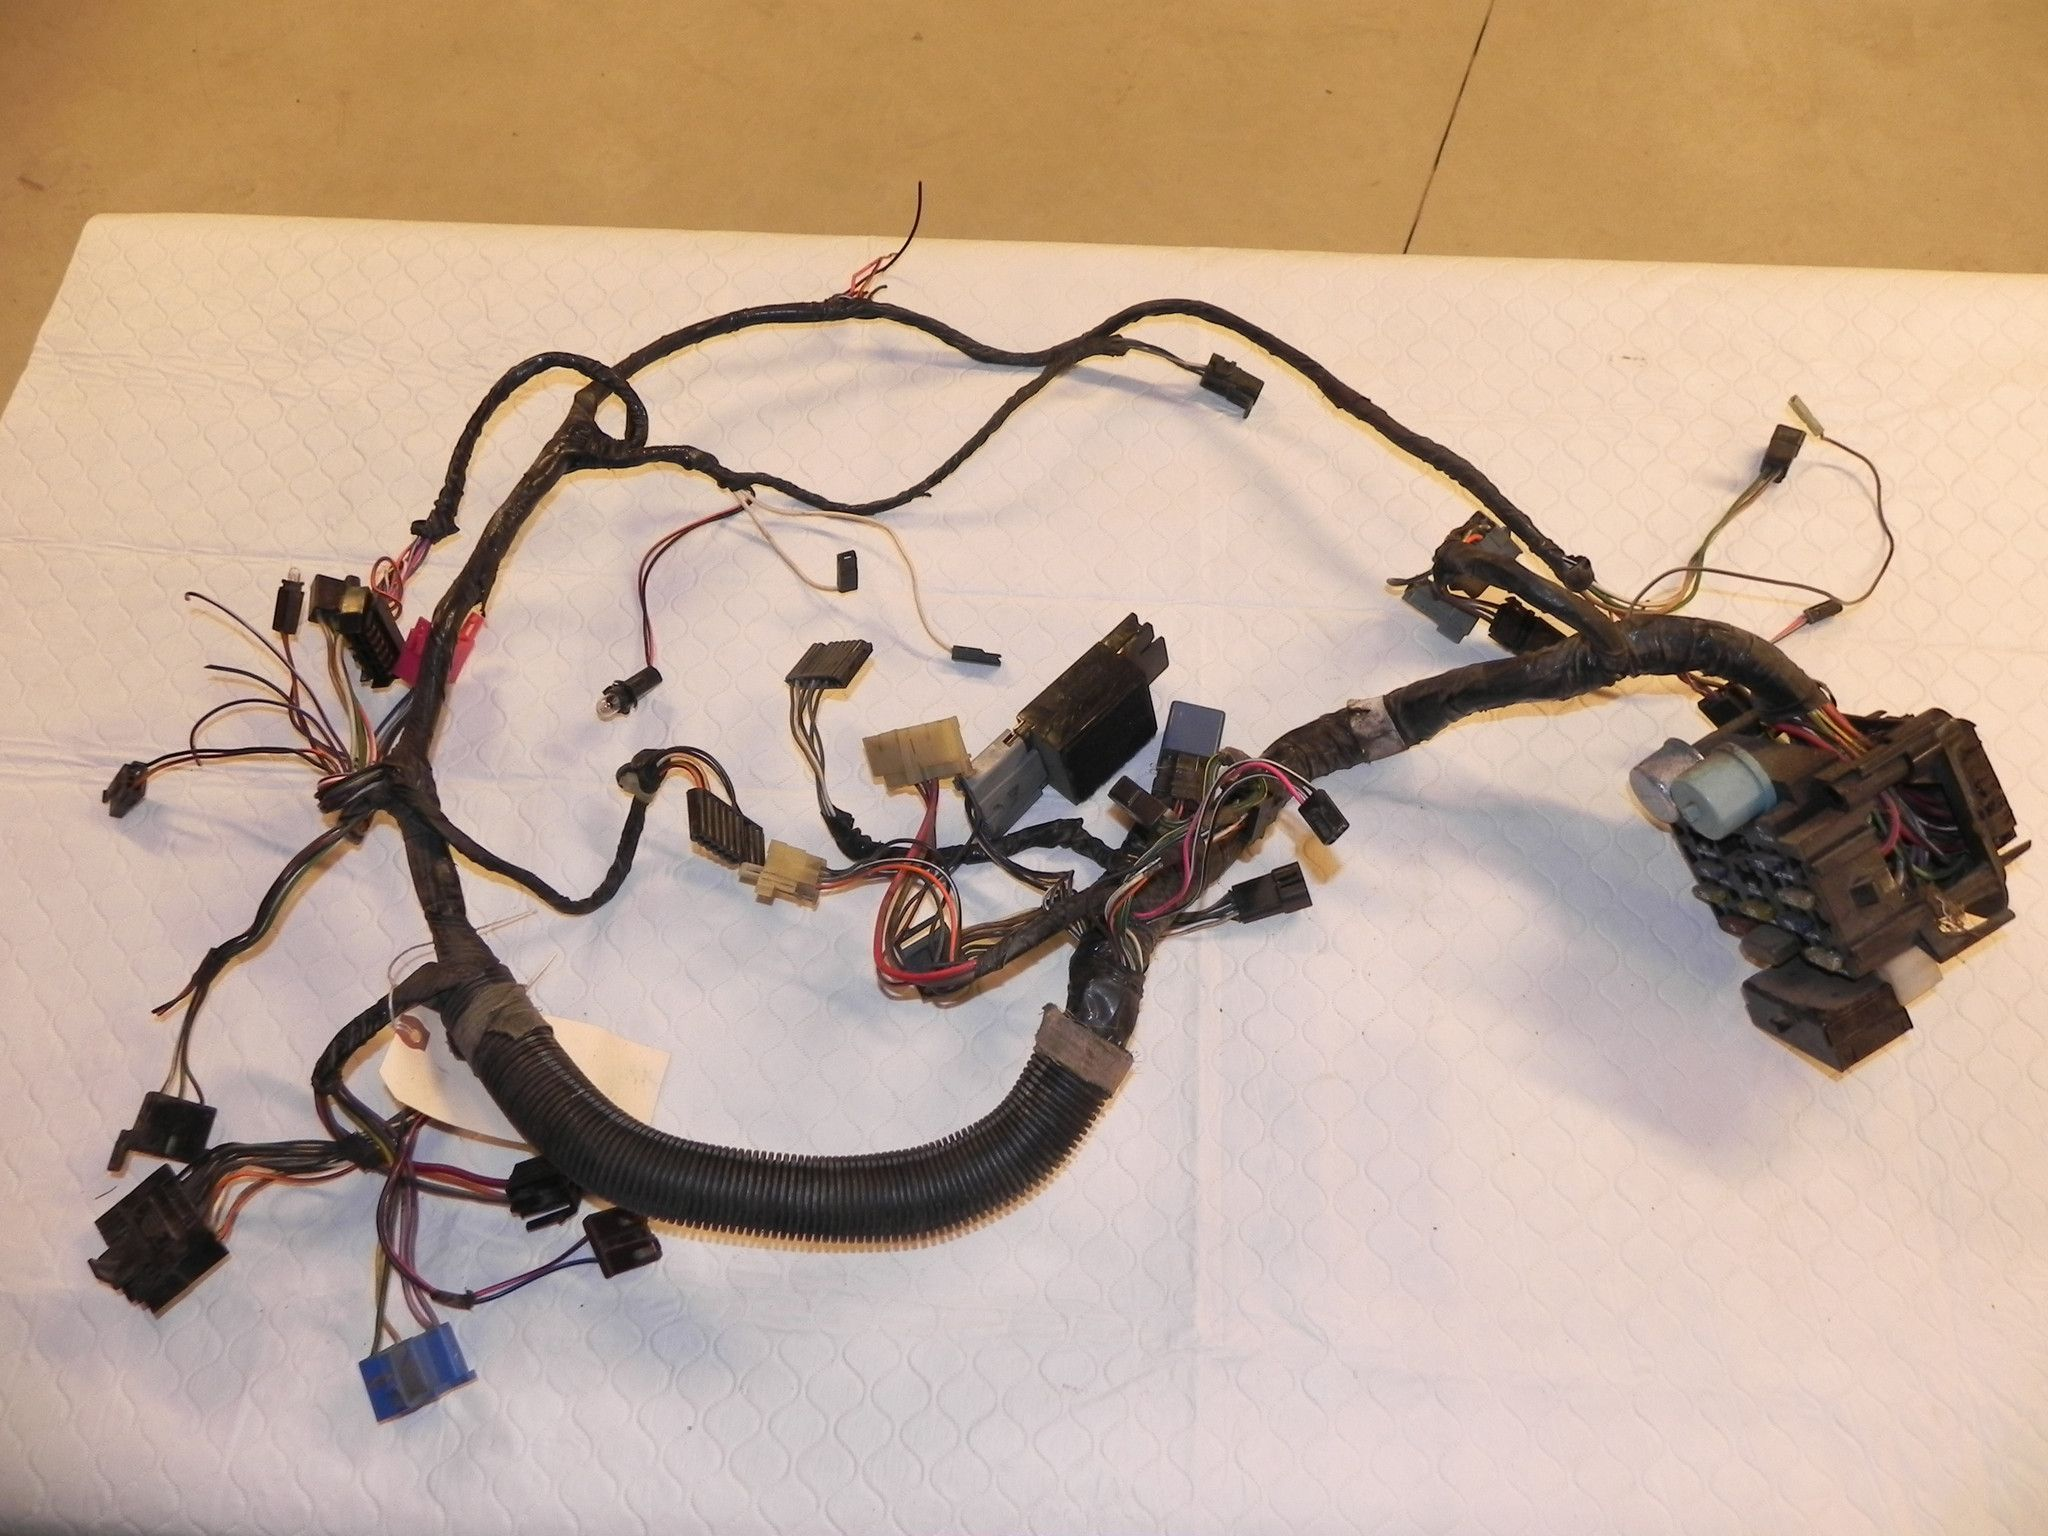 hight resolution of jeep wrangler yj under the dash wiring harness 1987 1991 parts only